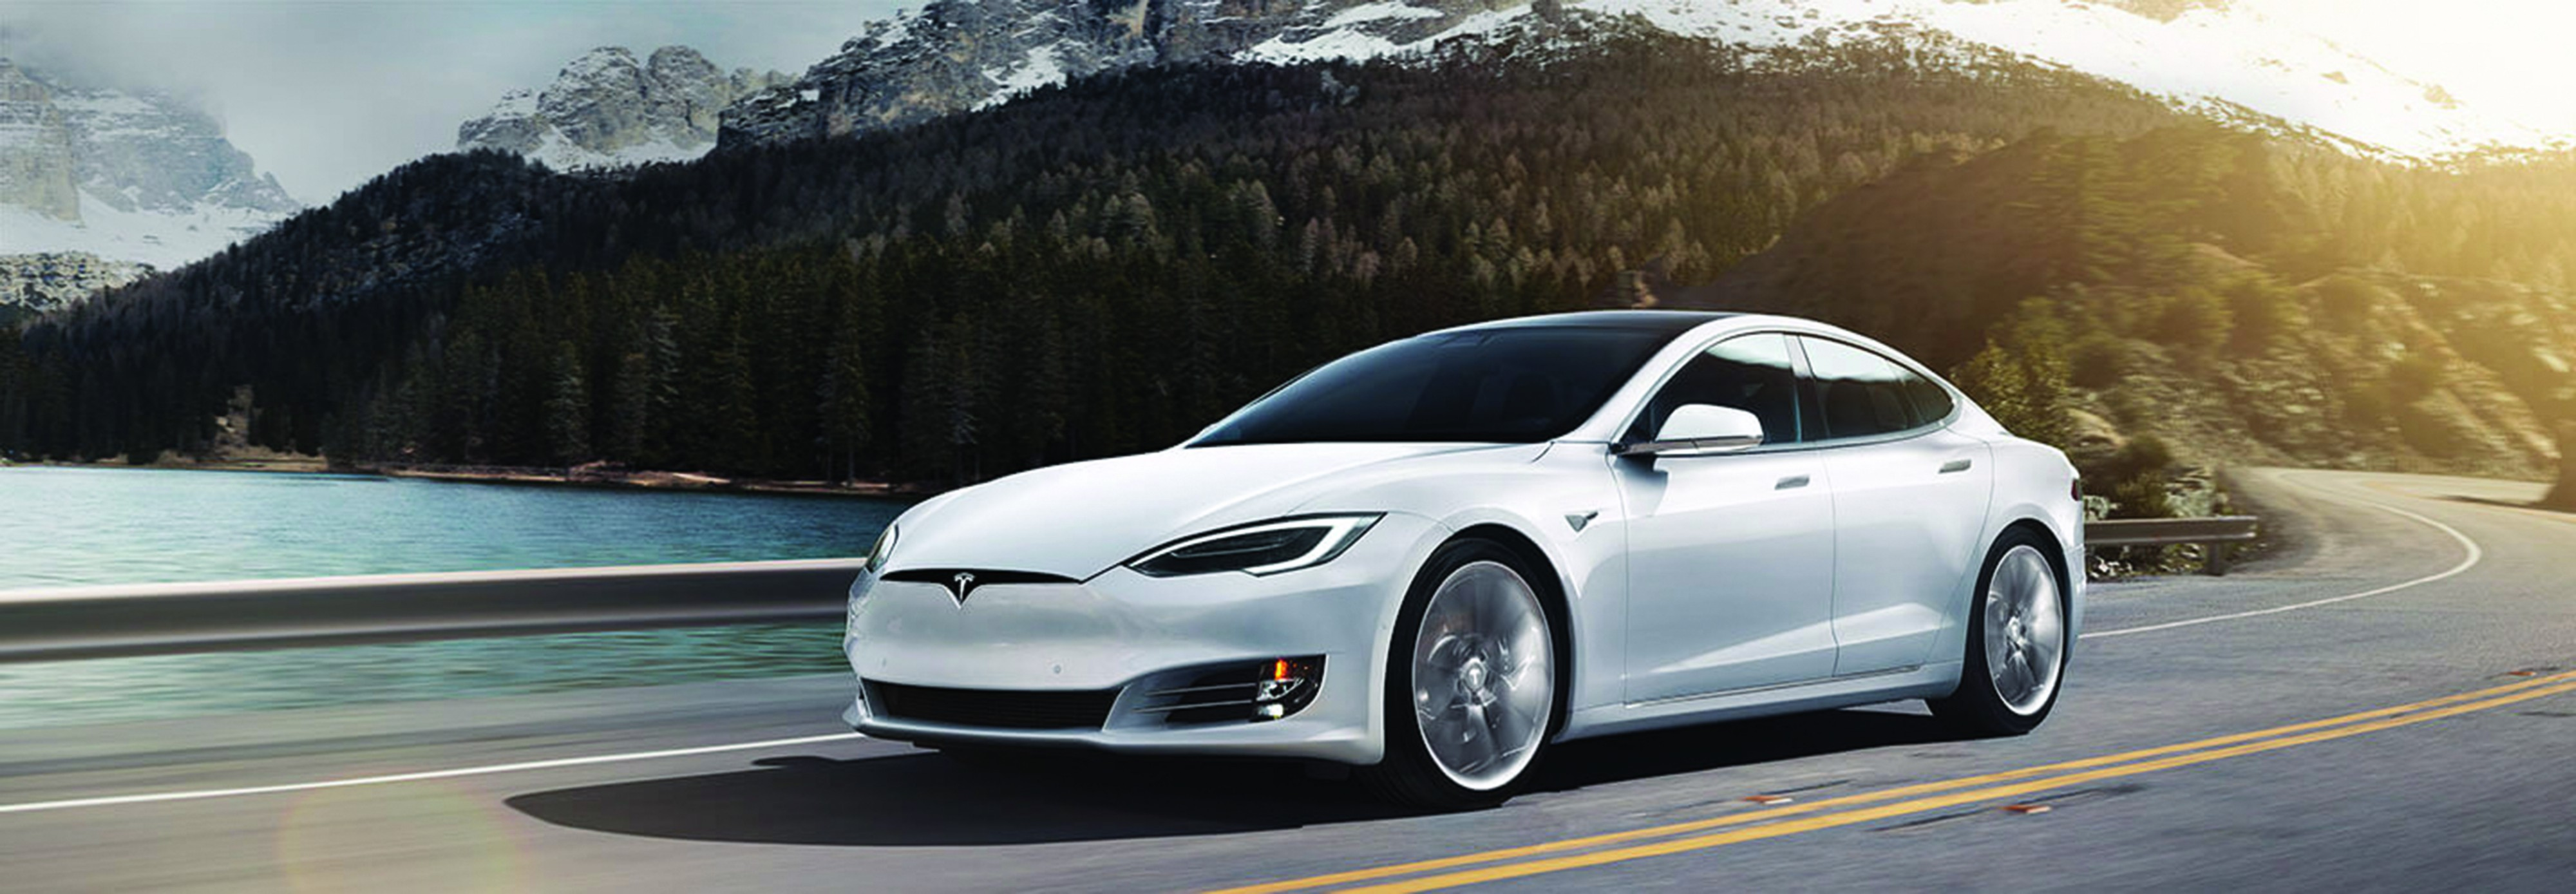 A Year in Review: The Electric Vehicle Market in 2018